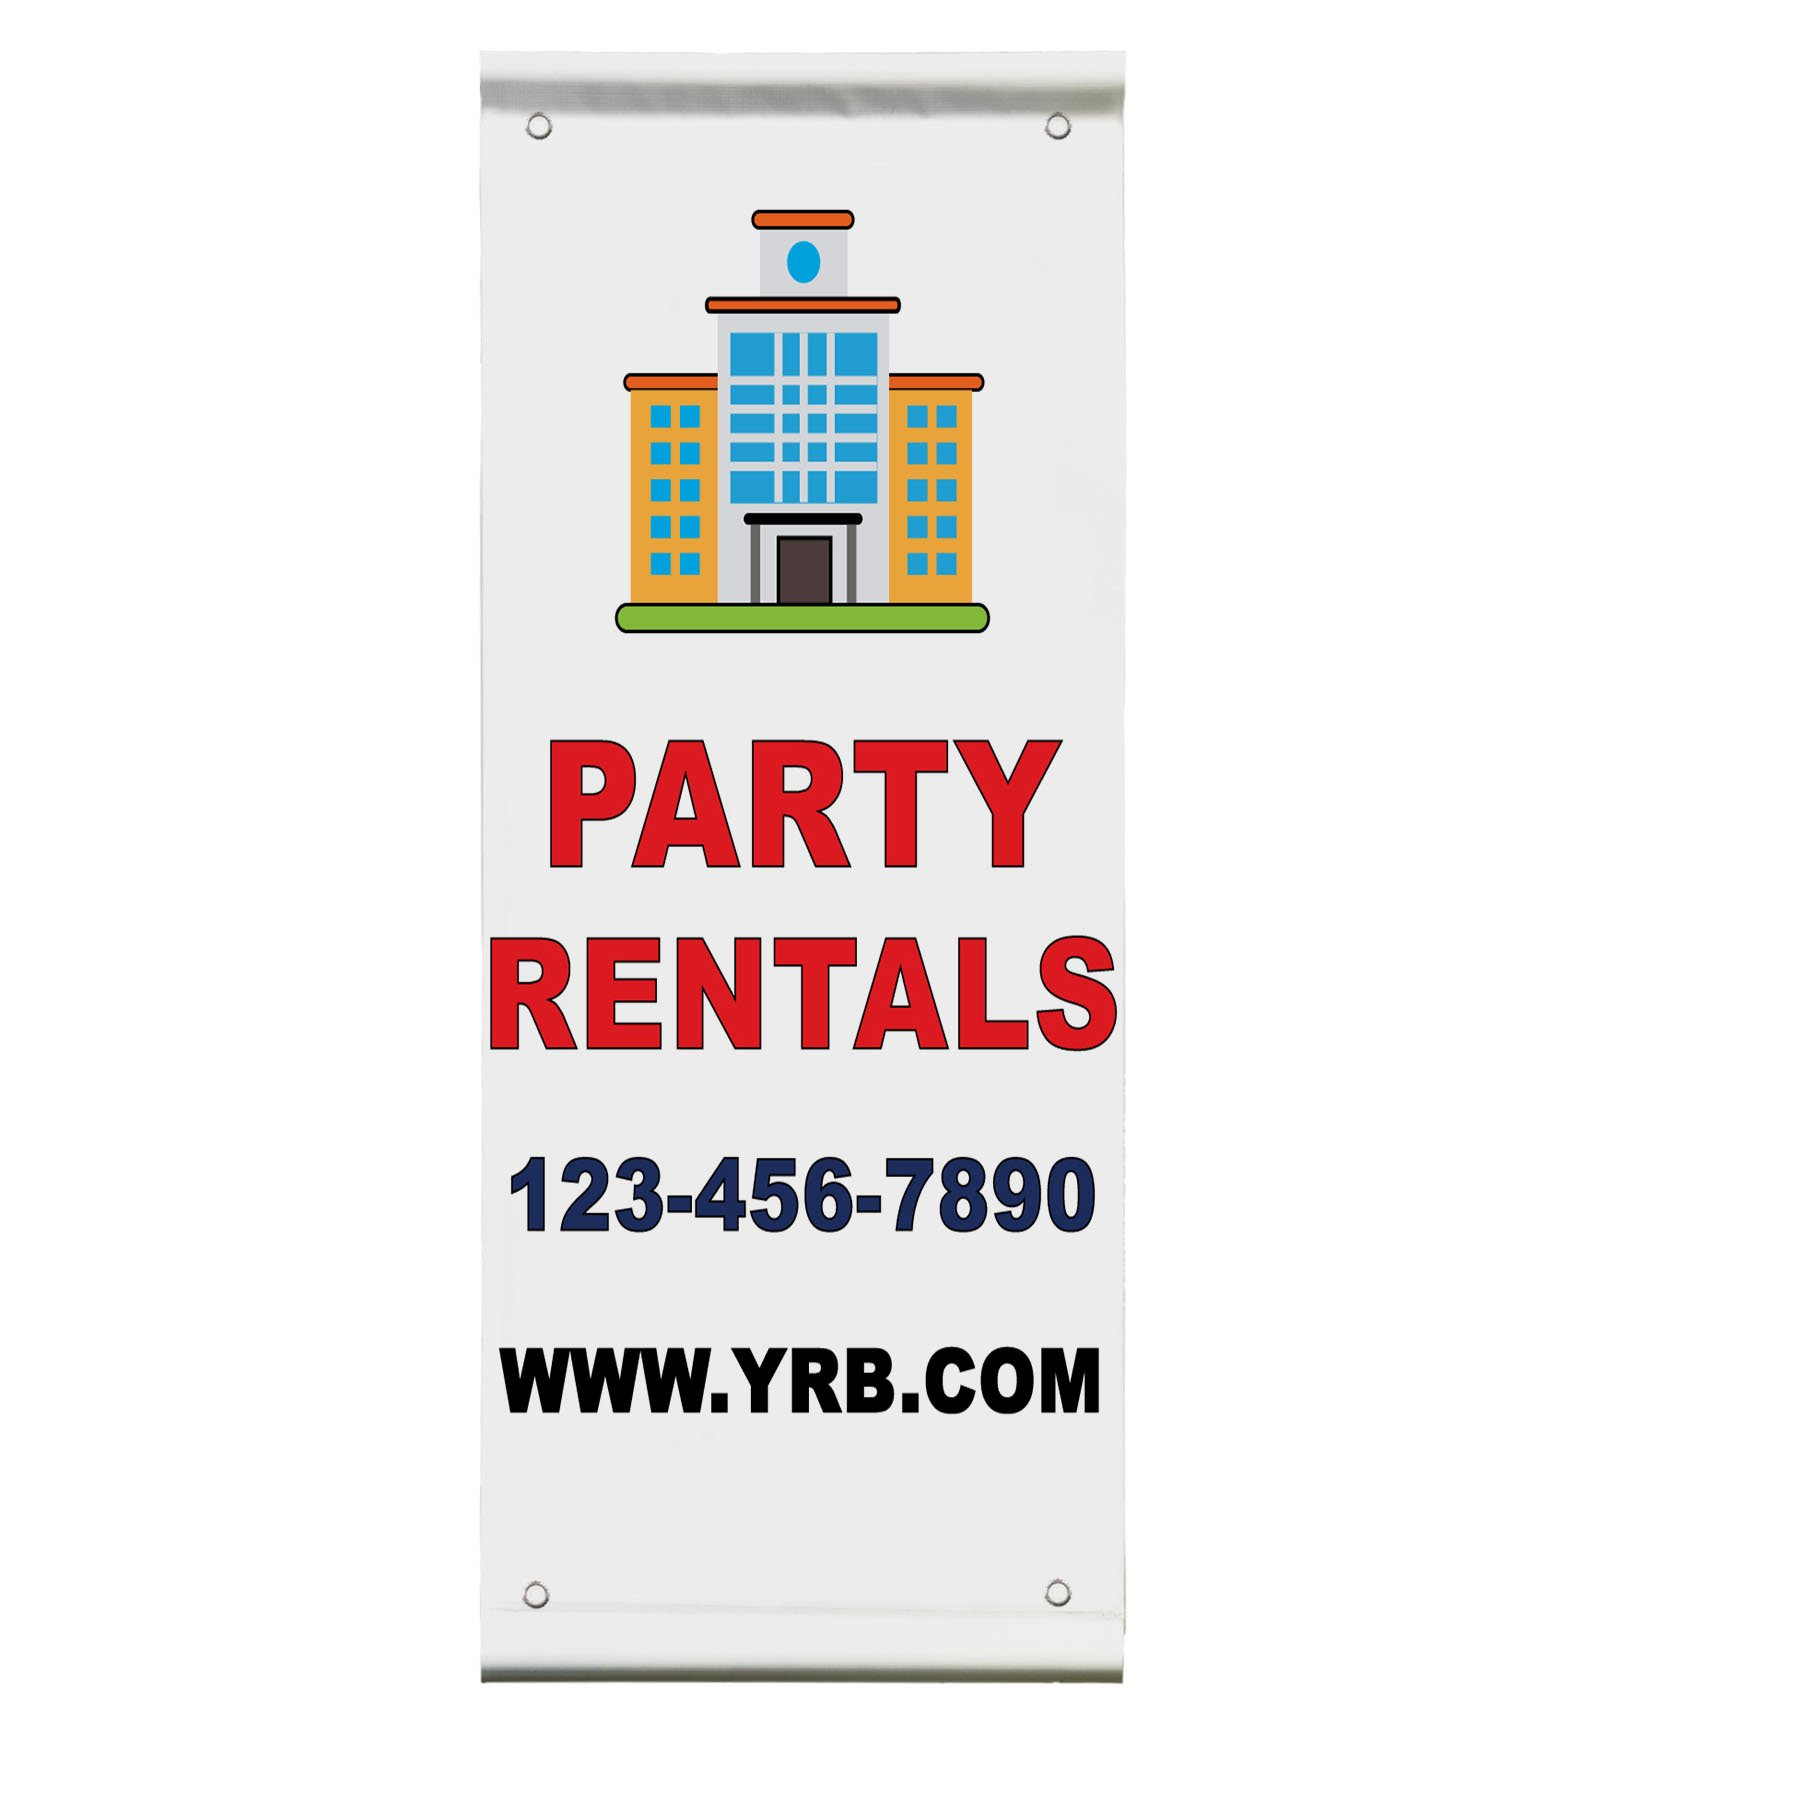 Party Rentals Phone Custom Red Blue Custom Double Sided Pole Banner Sign 30 in x 60 in w/ Wall Bracket